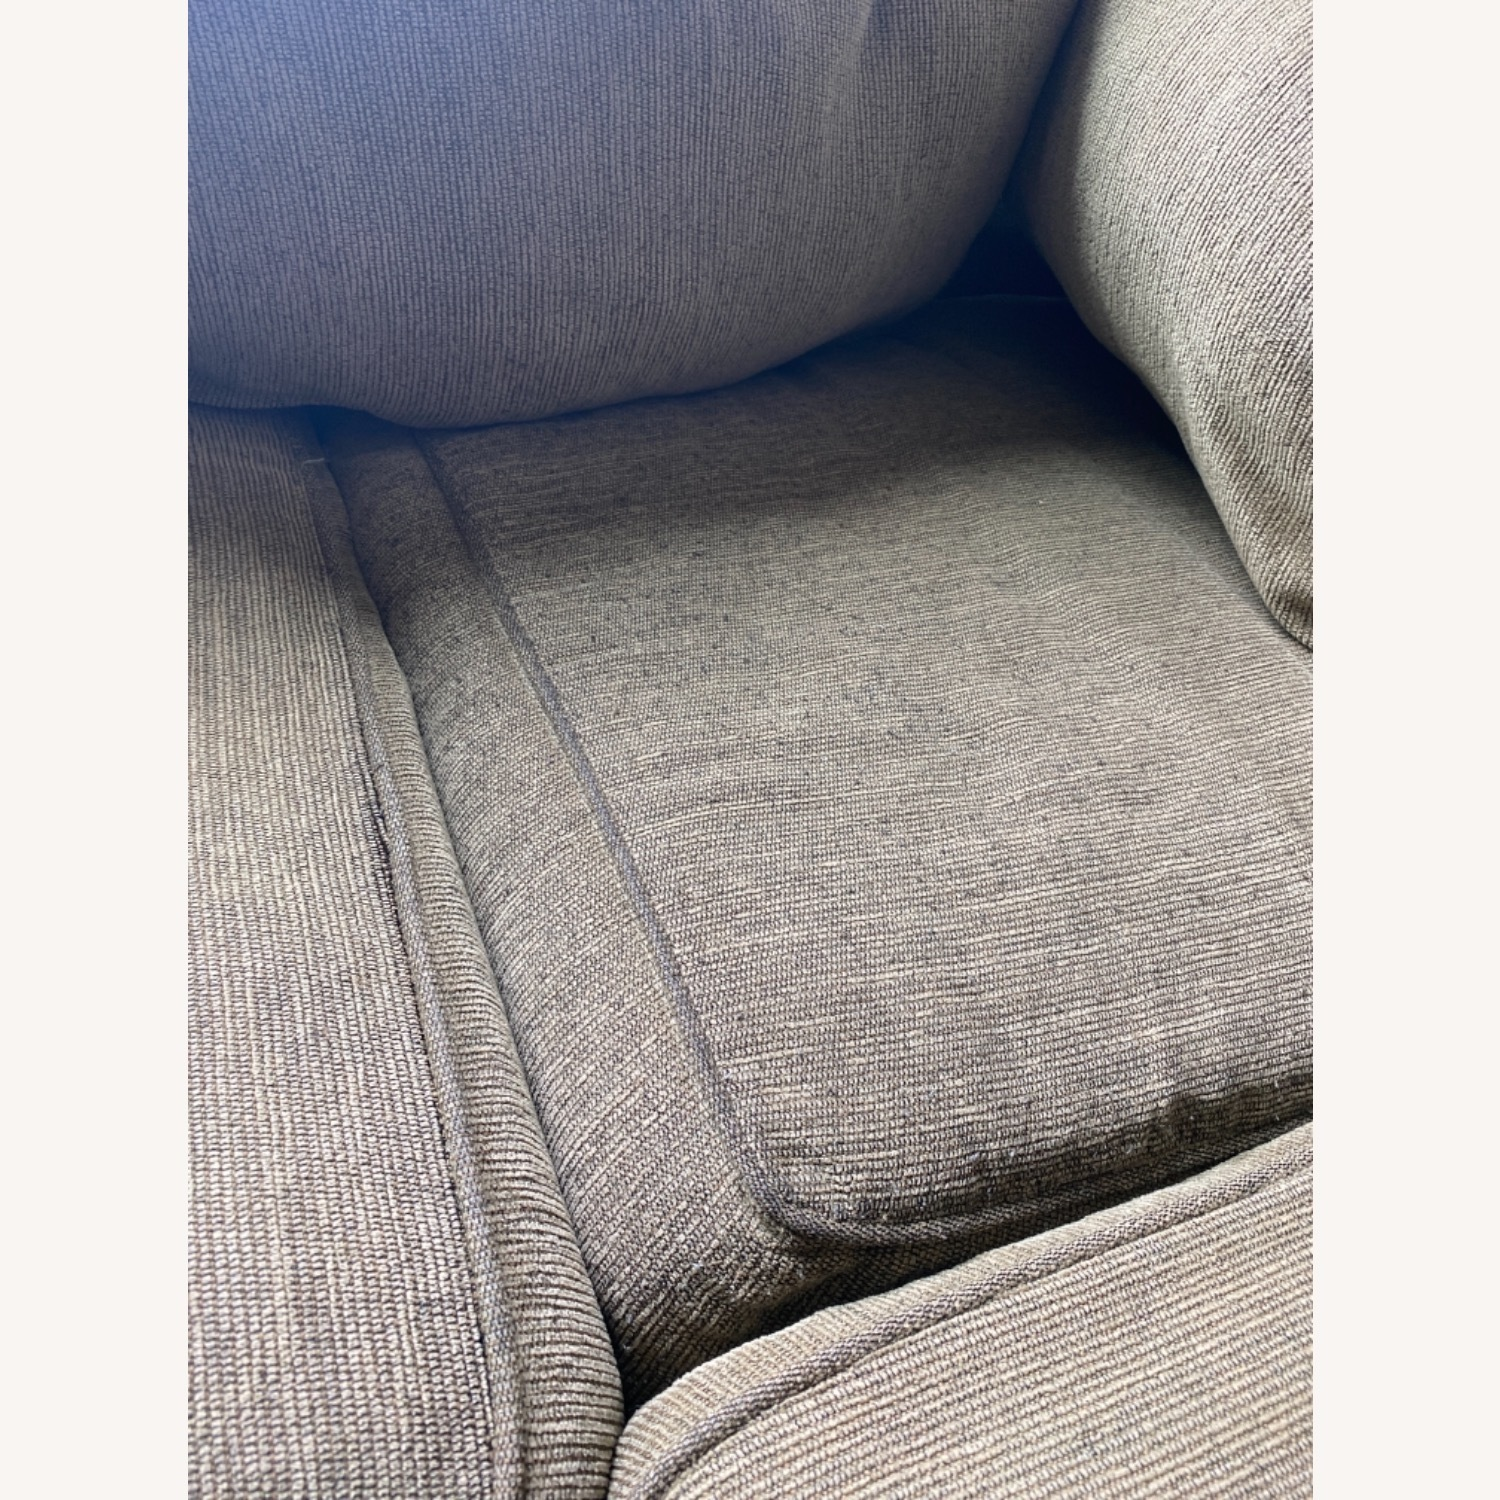 Olive Green 2 Piece Sectional Sleeper Sofa - image-3